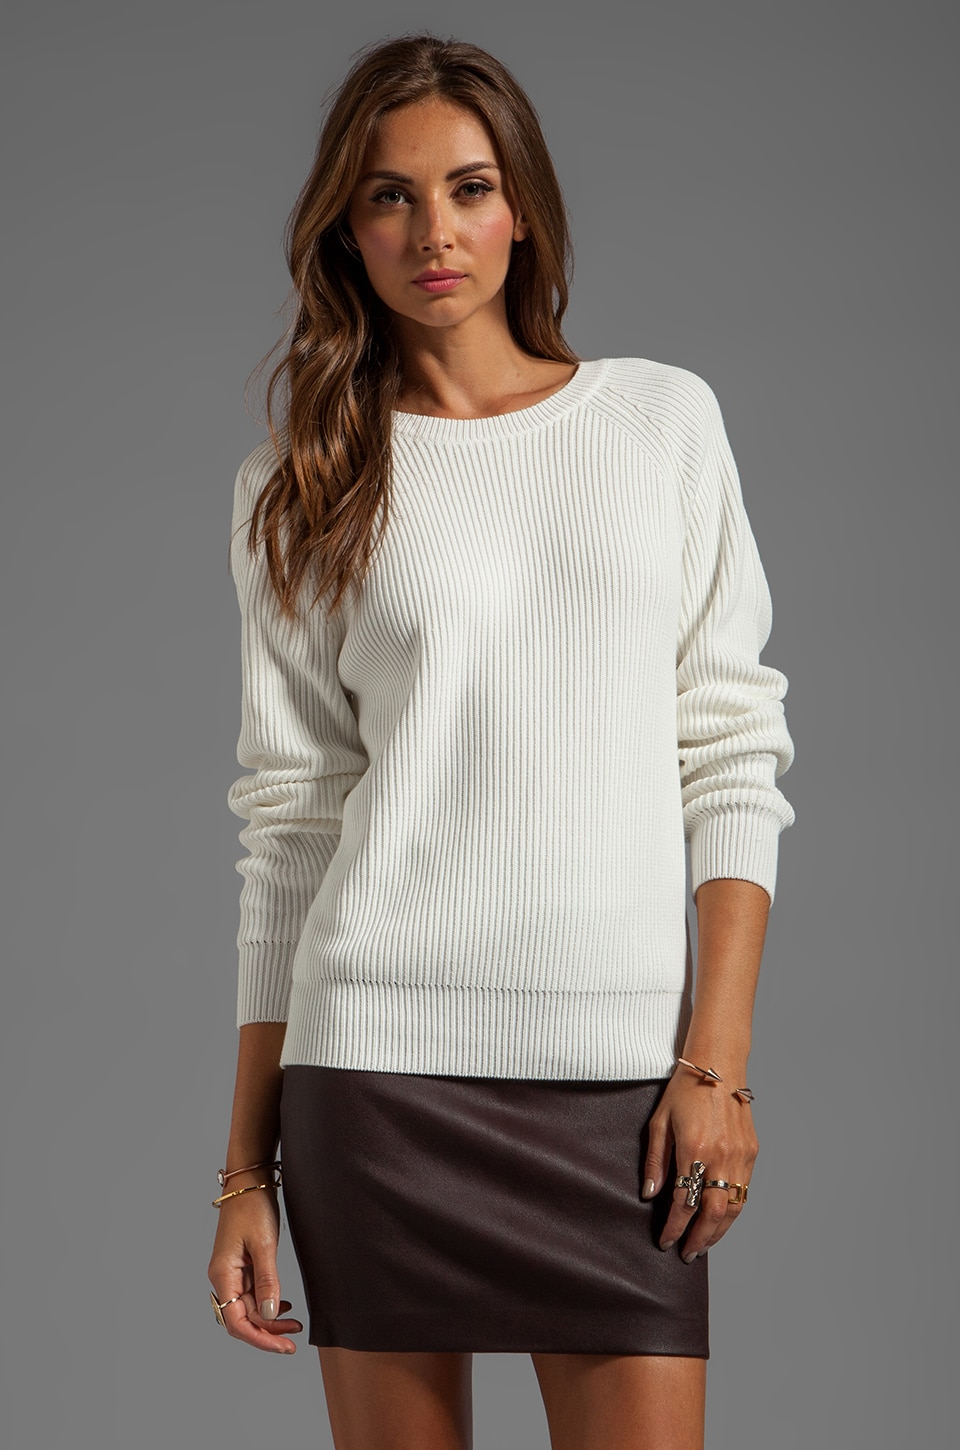 T by Alexander Wang Techy Slick Cotton Rib Sweater in White